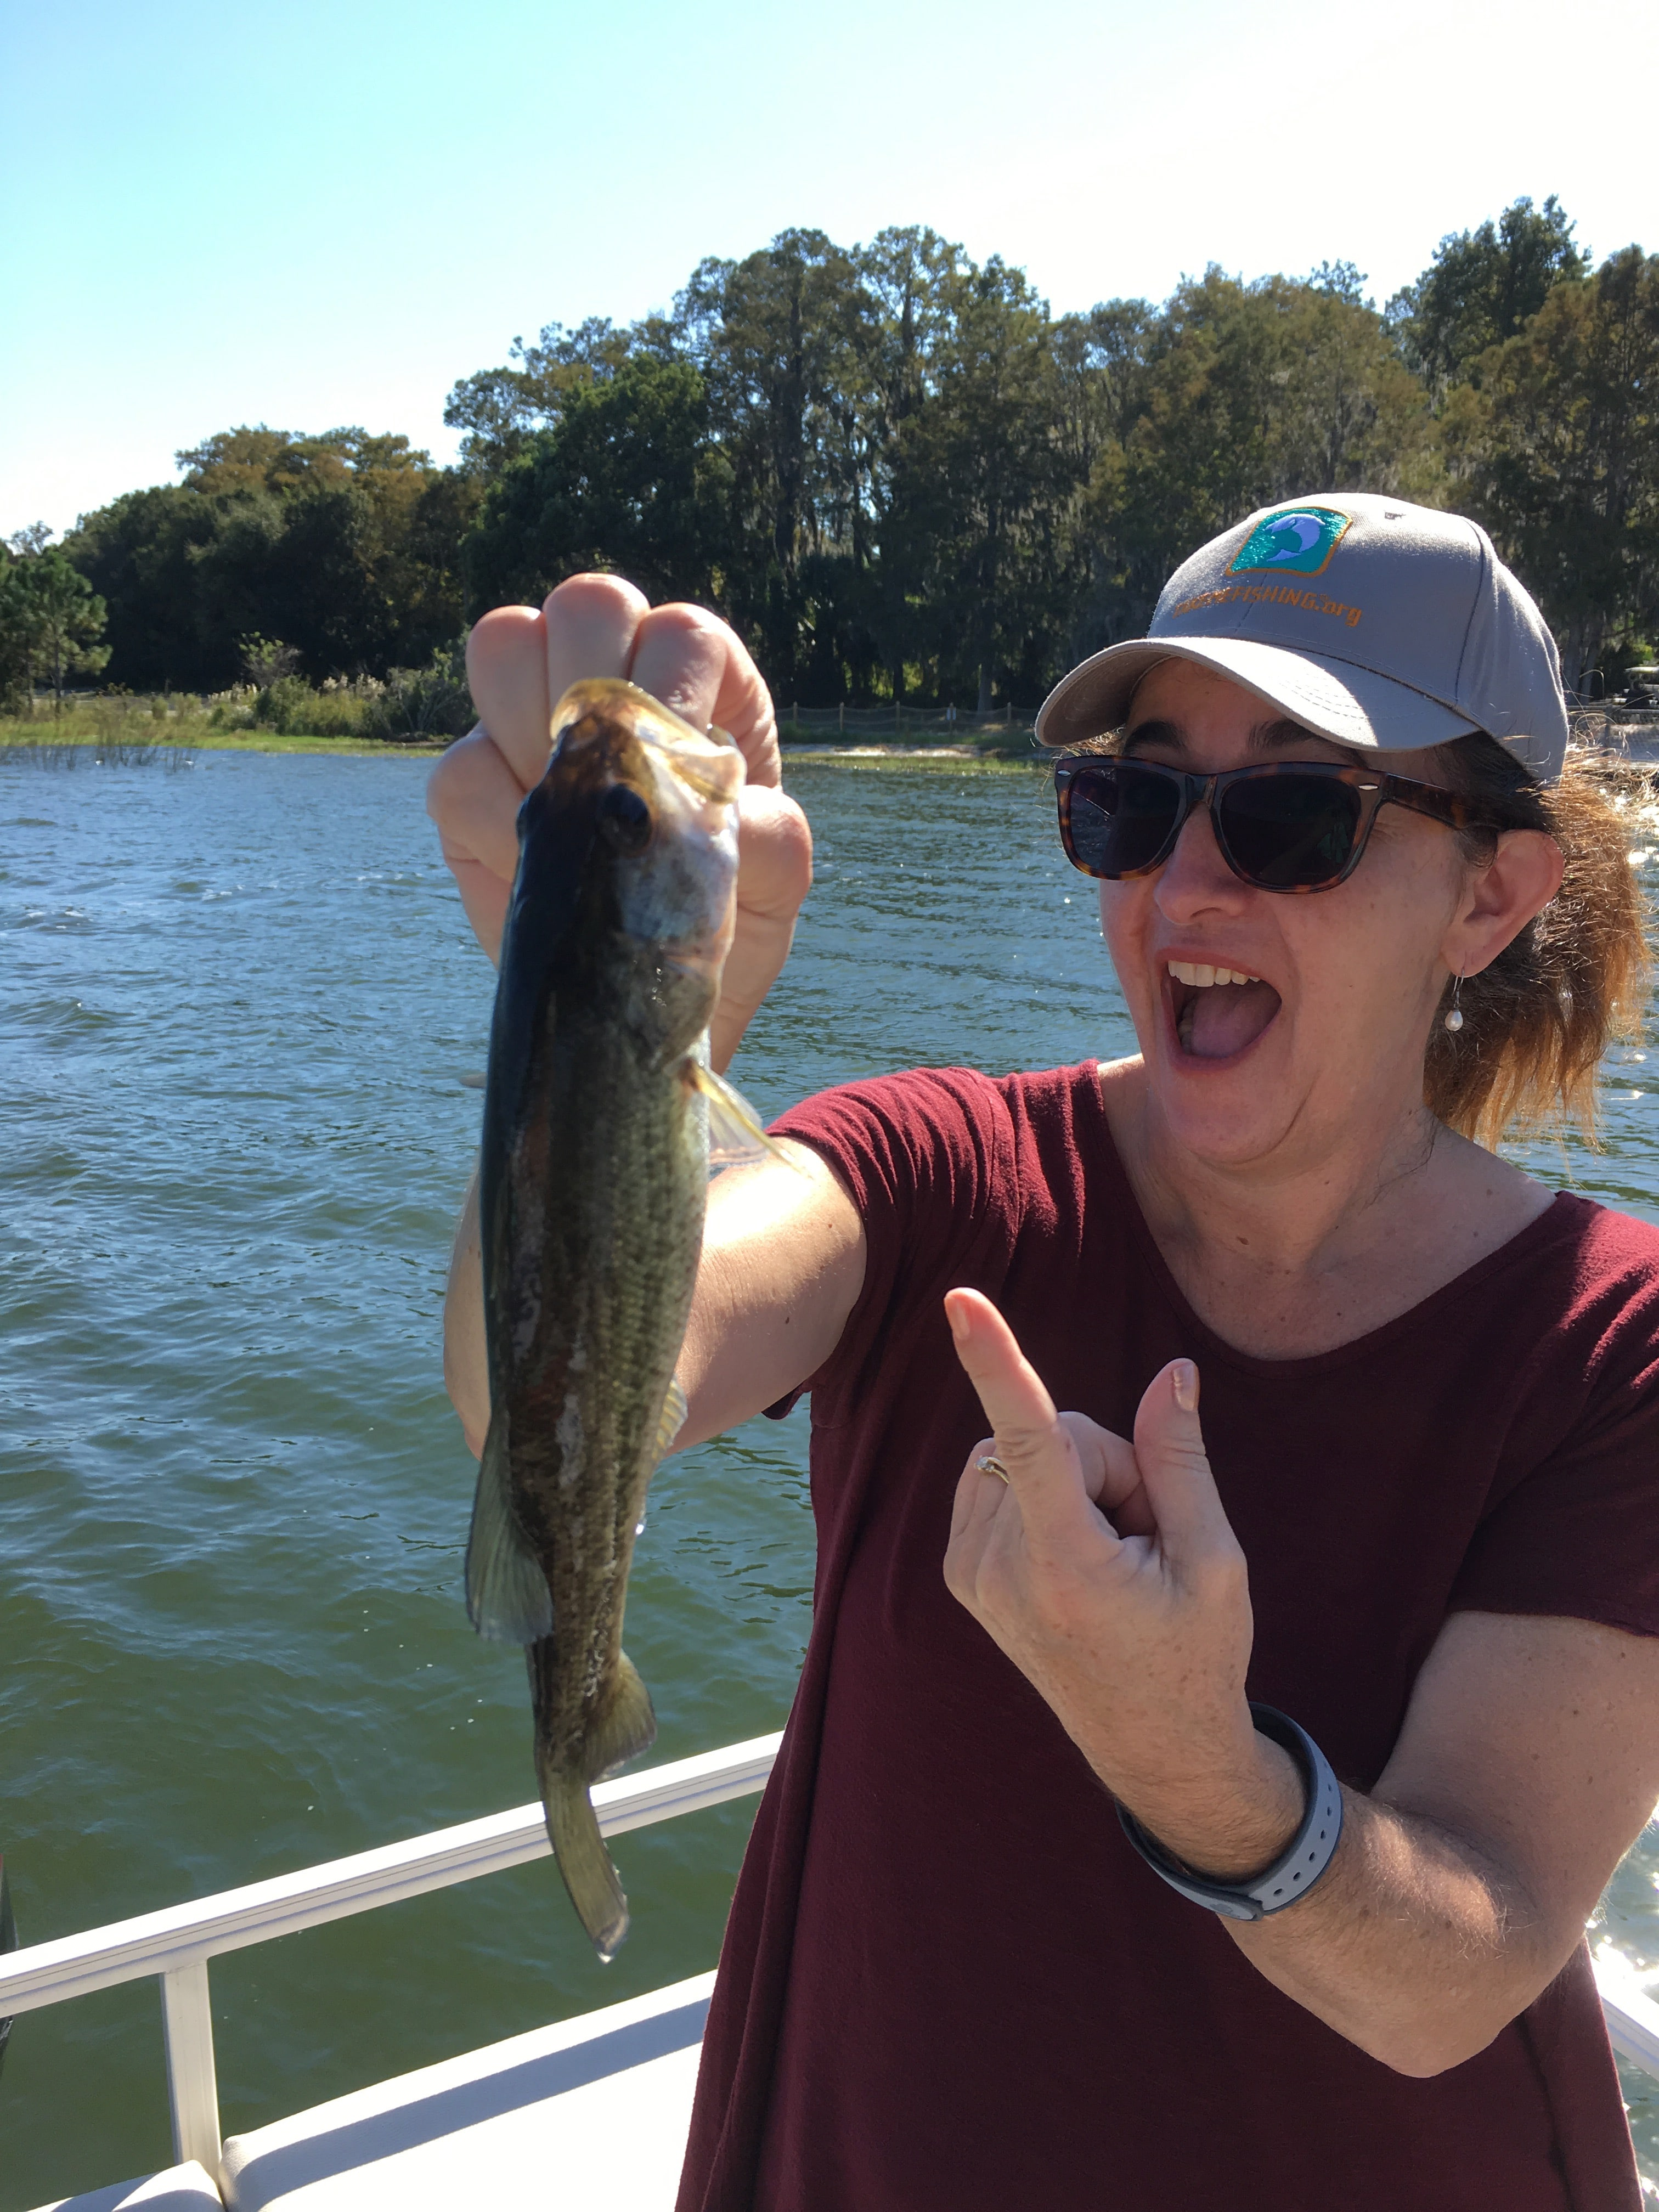 Sarah caught a fish Takemefishing.org